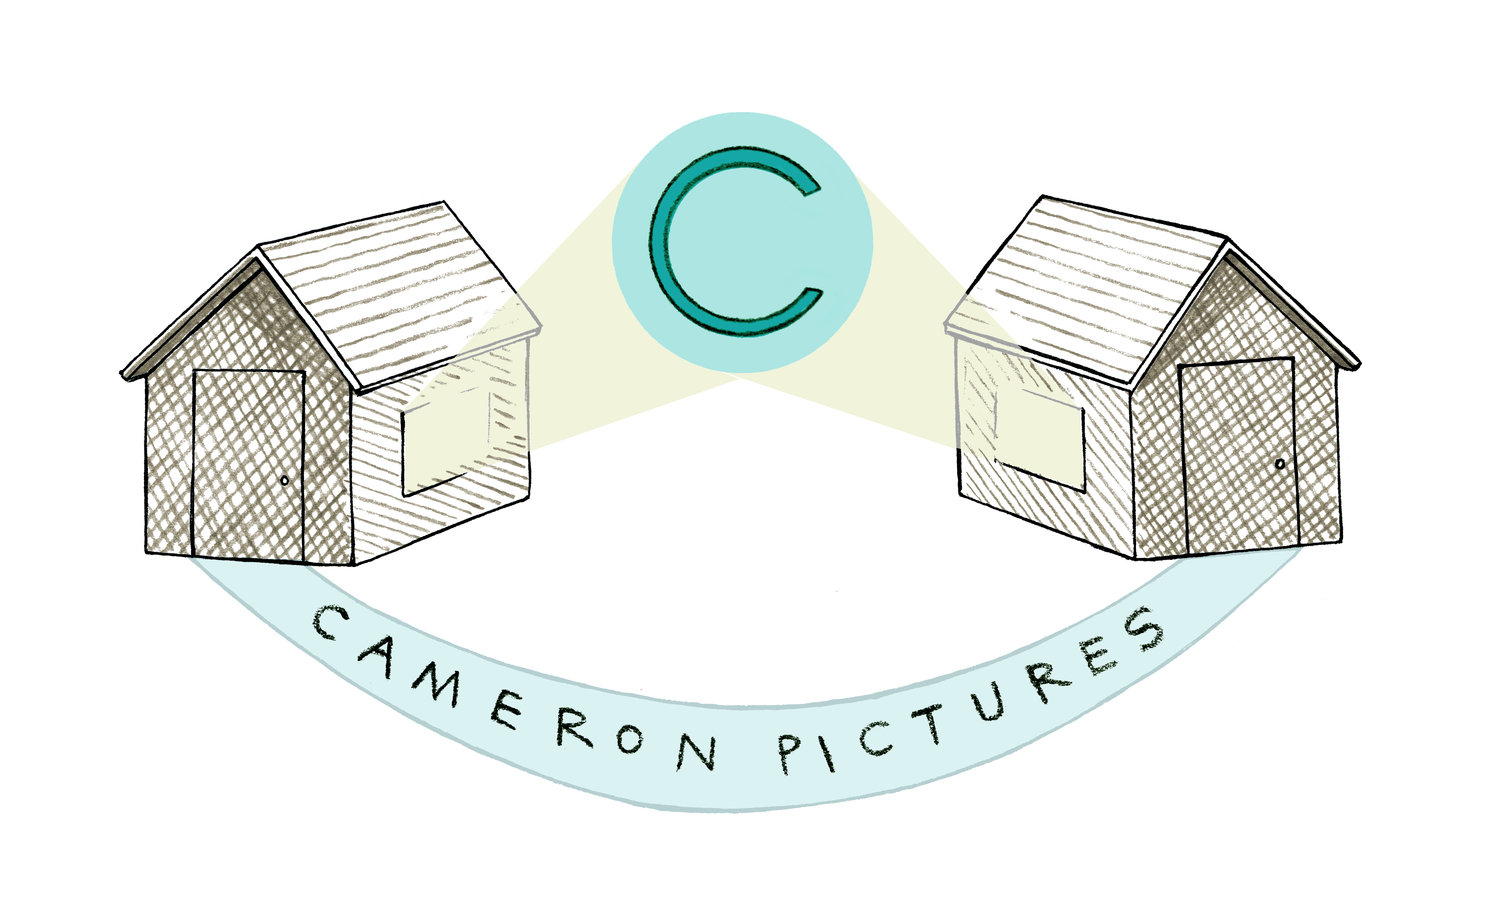 Cameron Pictures Inc.